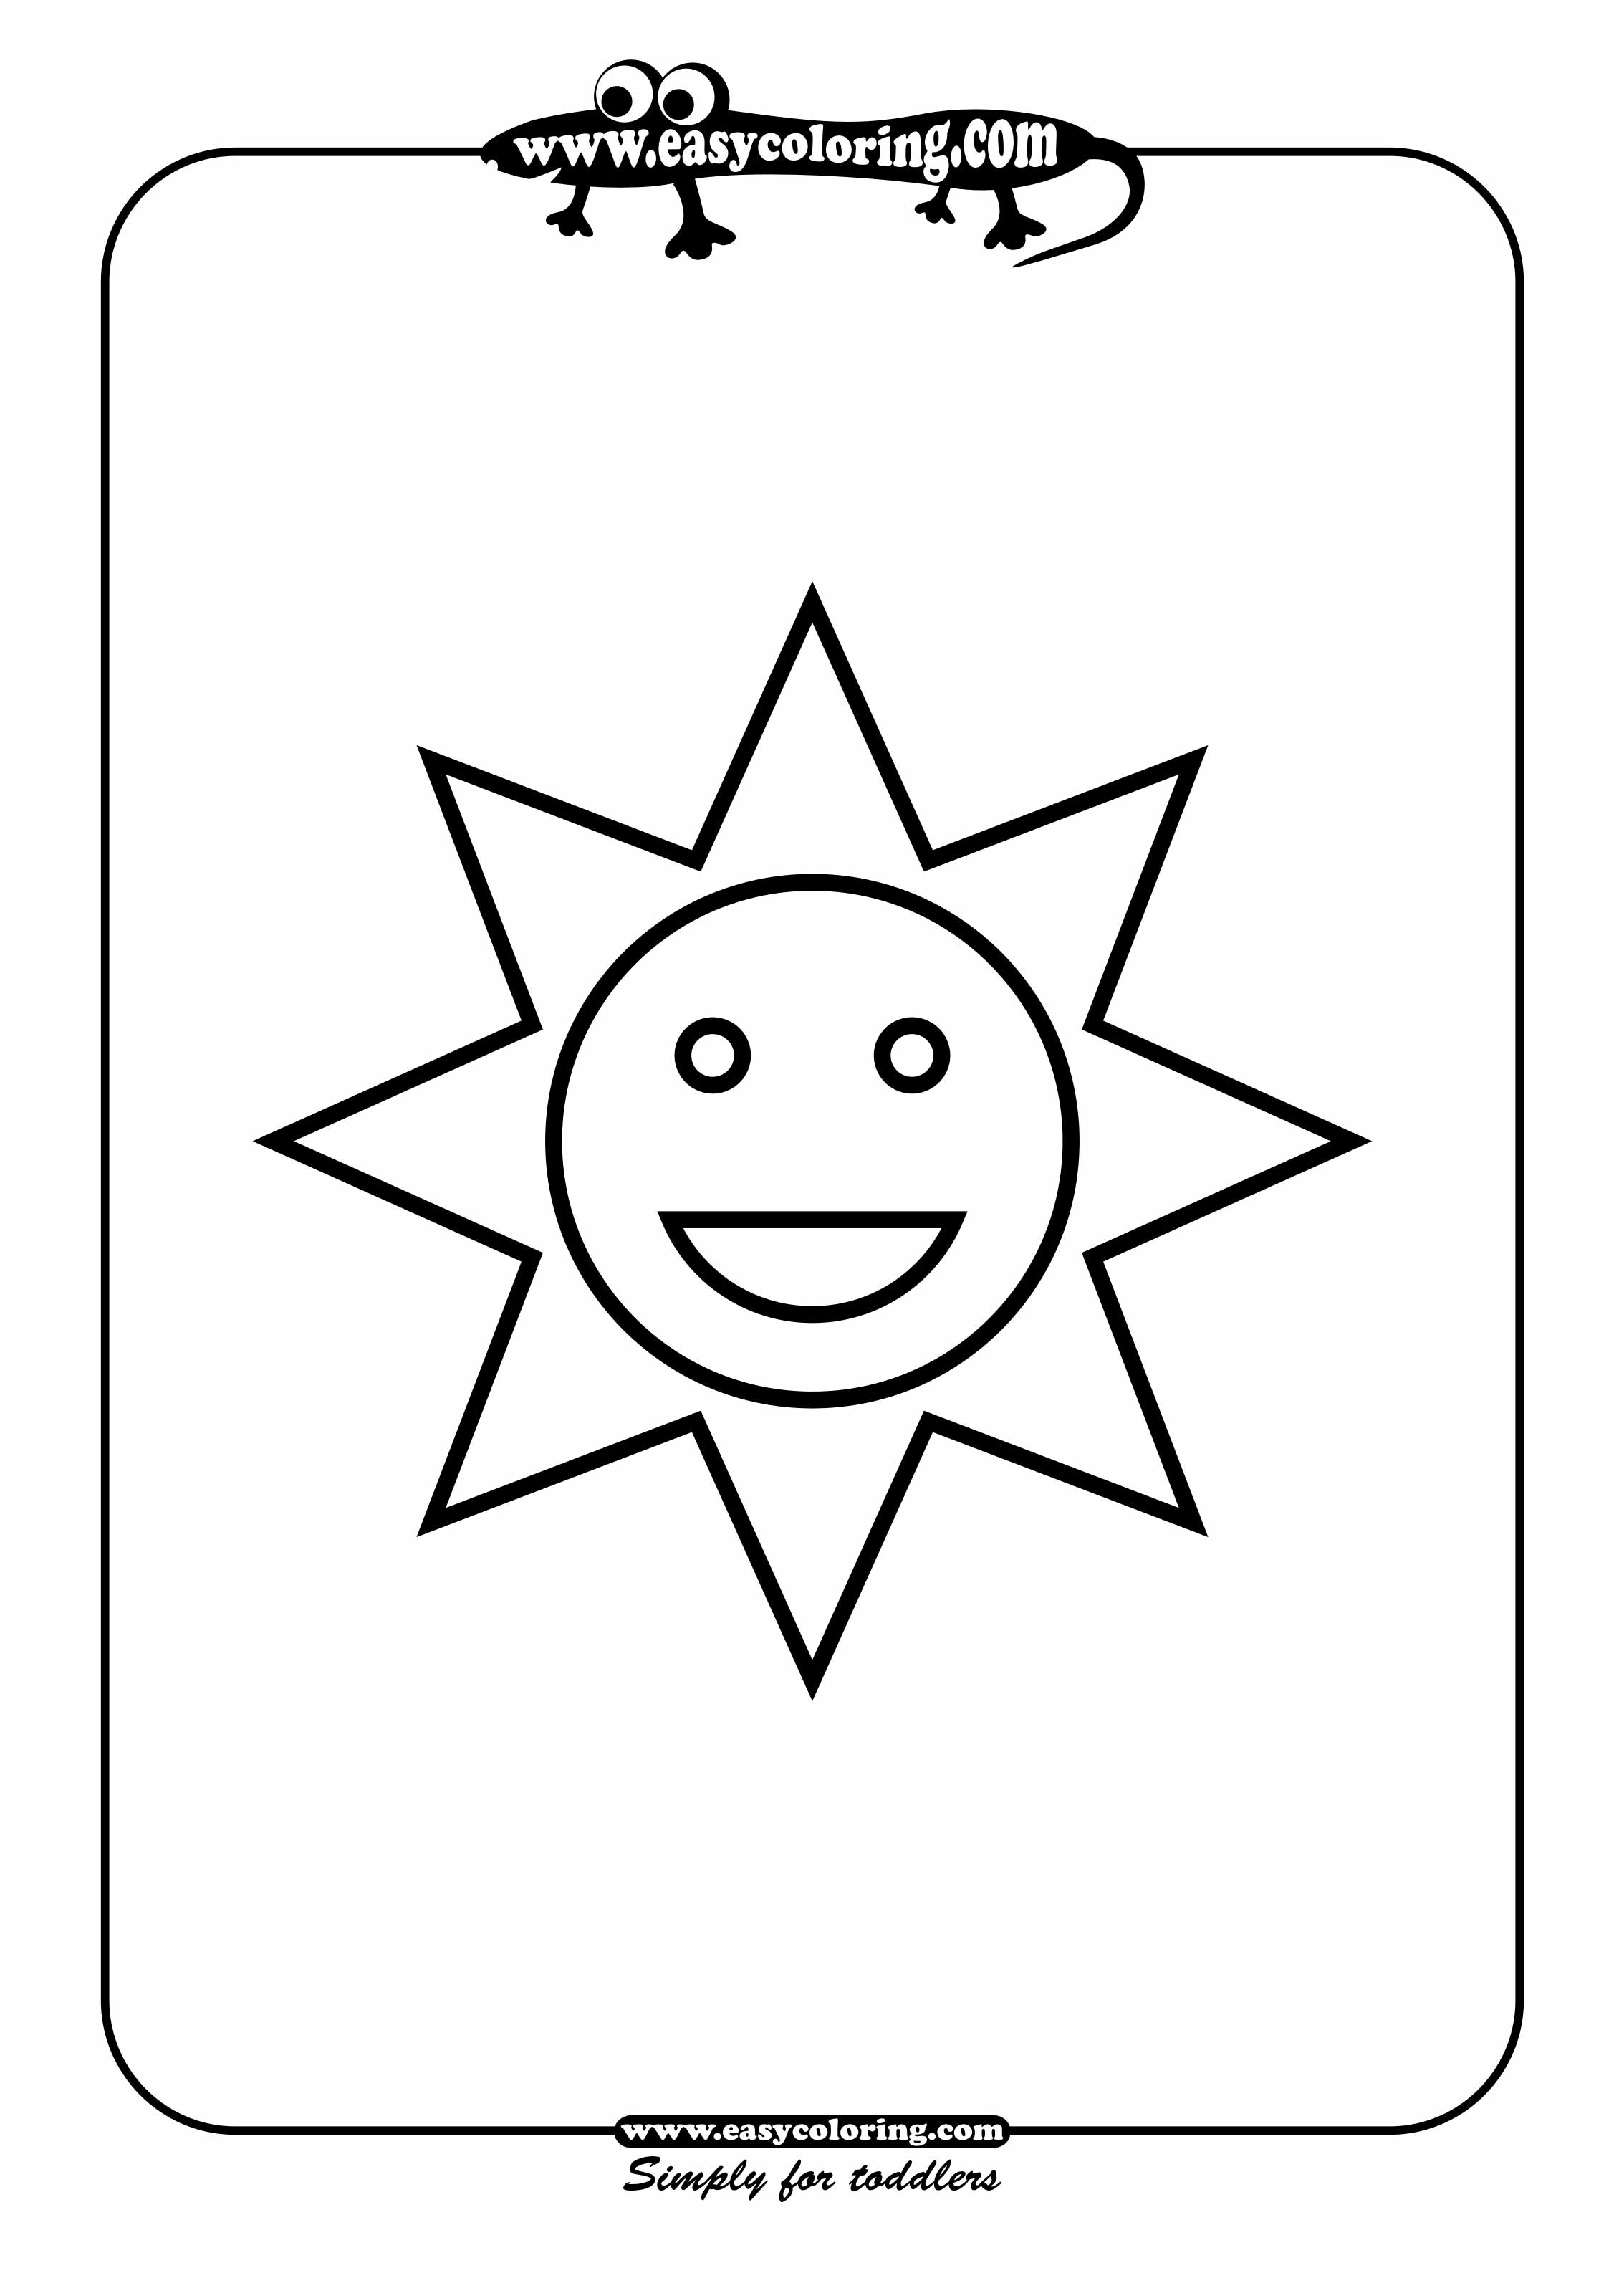 2267x3186 Simple Drawing For Toddlers Simple Drawing For Kids Using Shapes